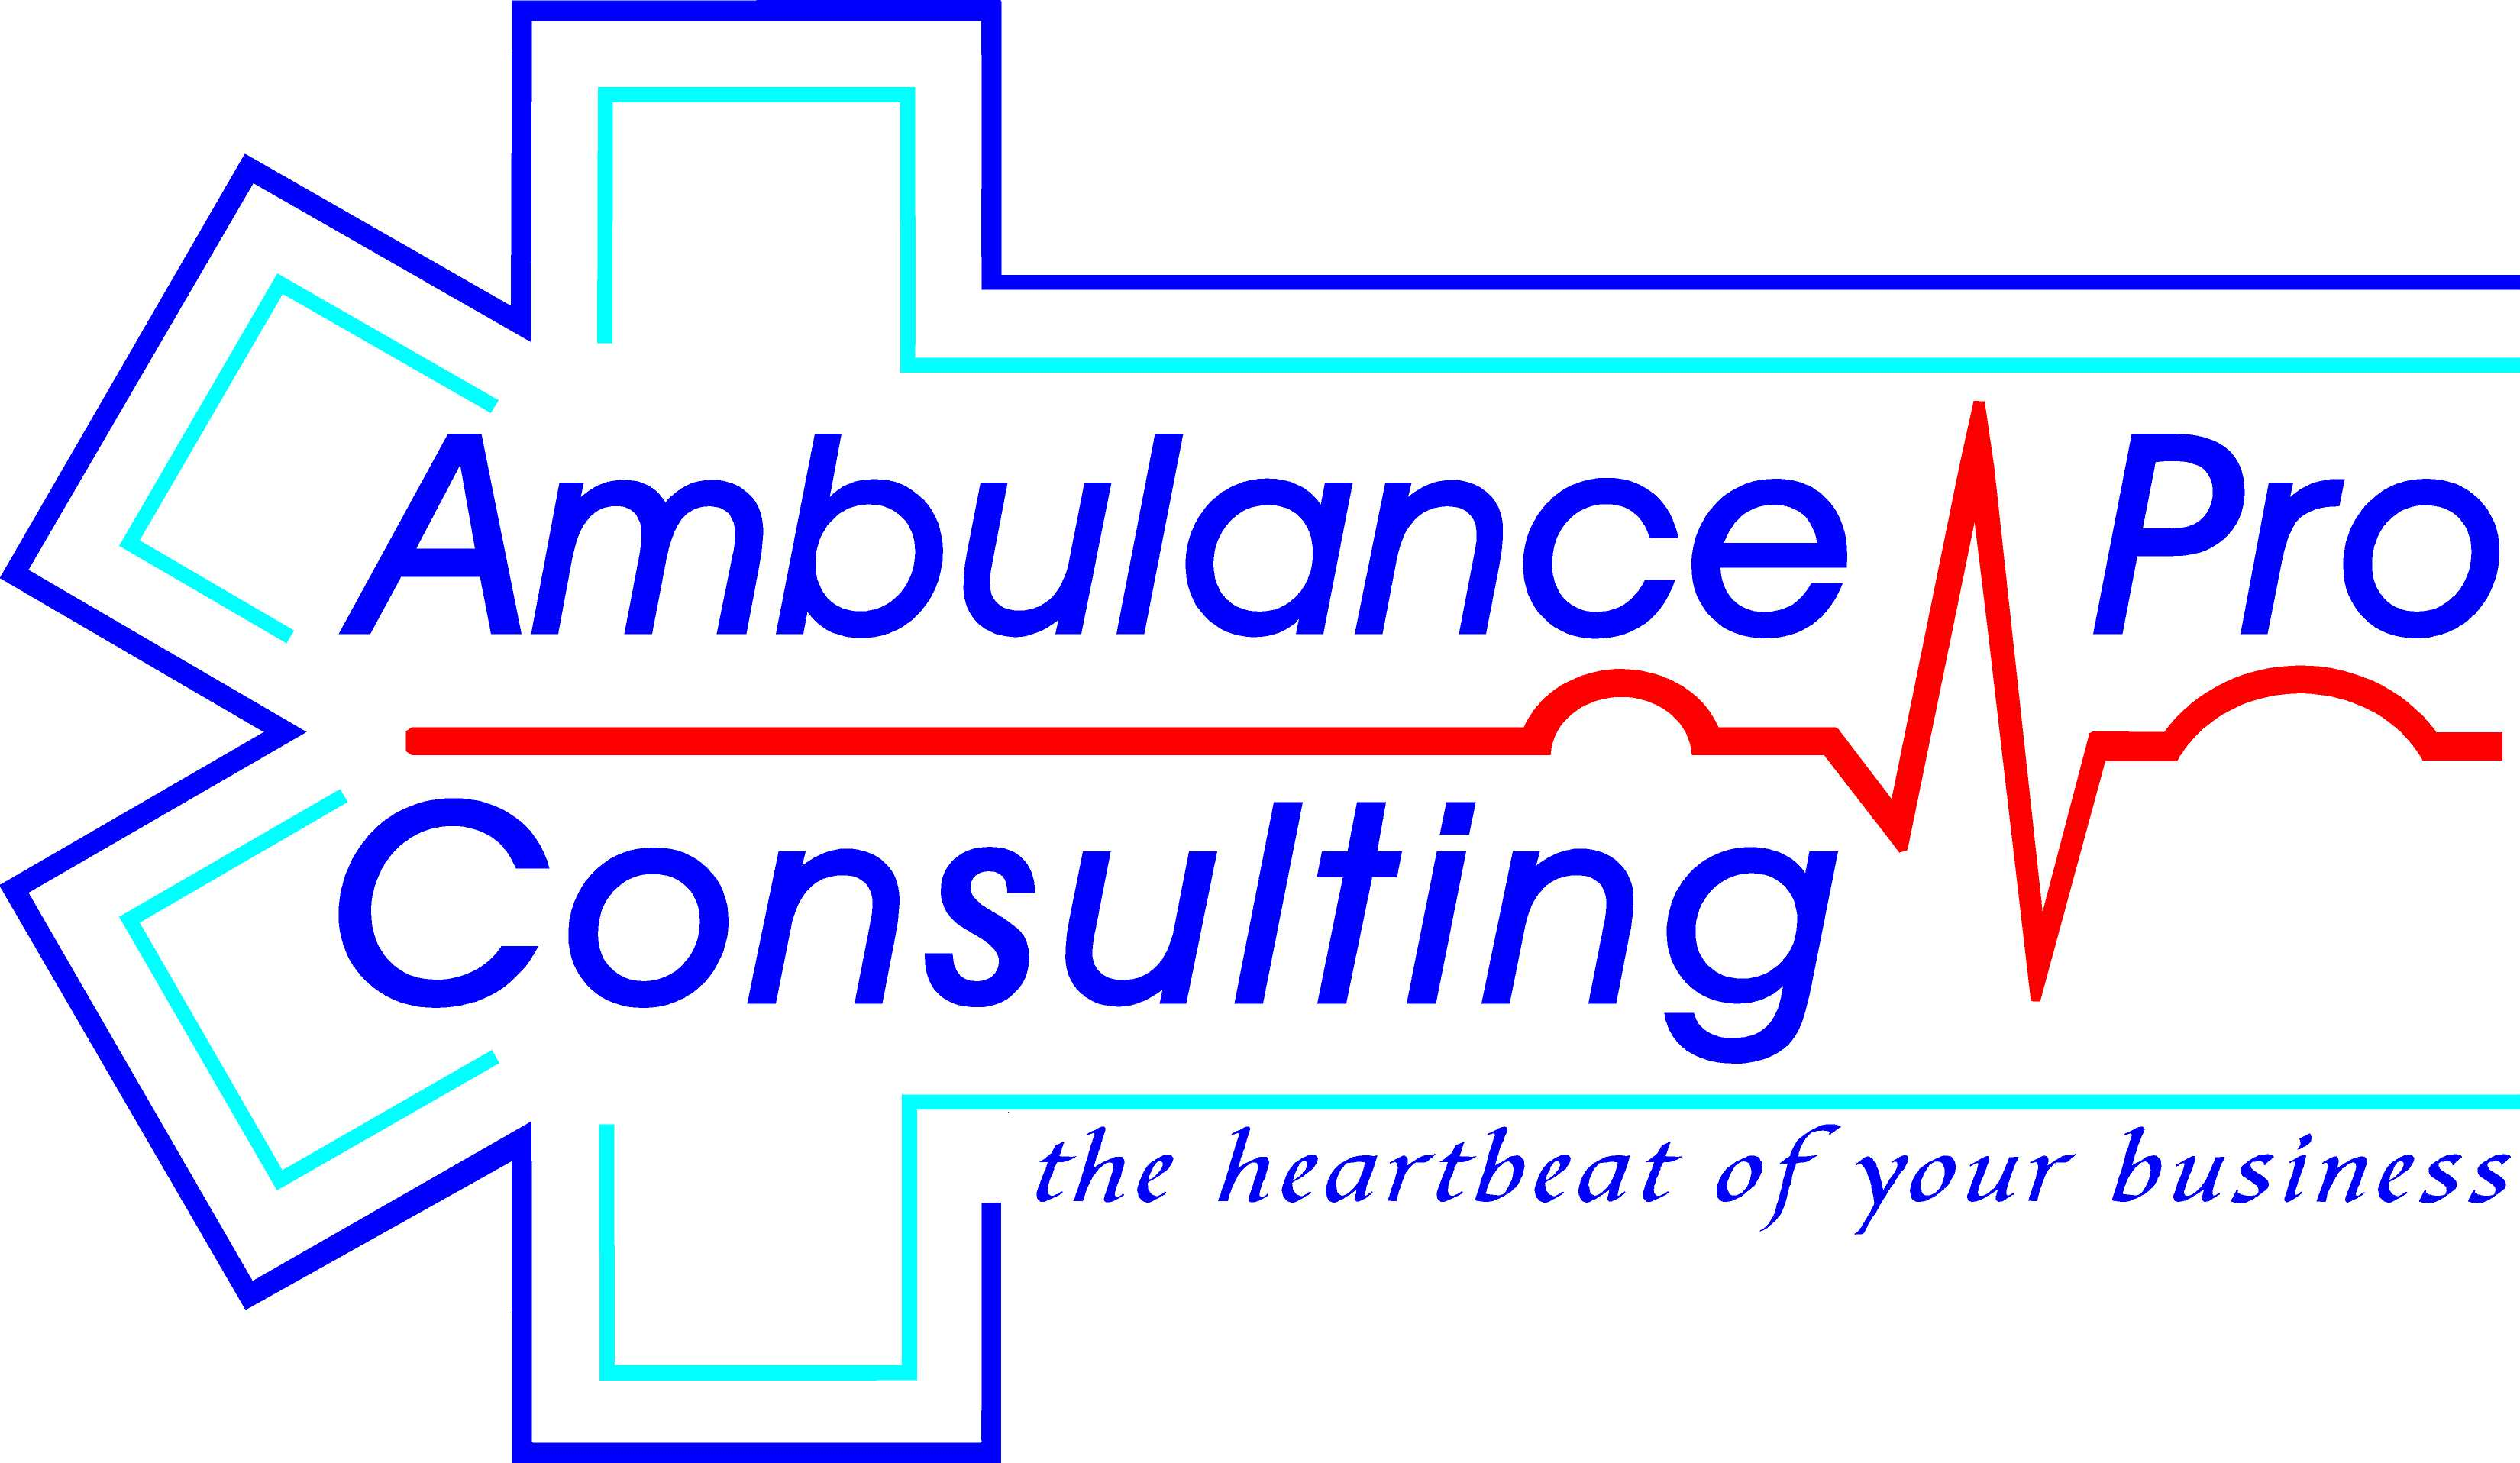 Ambulance Pro Consulting